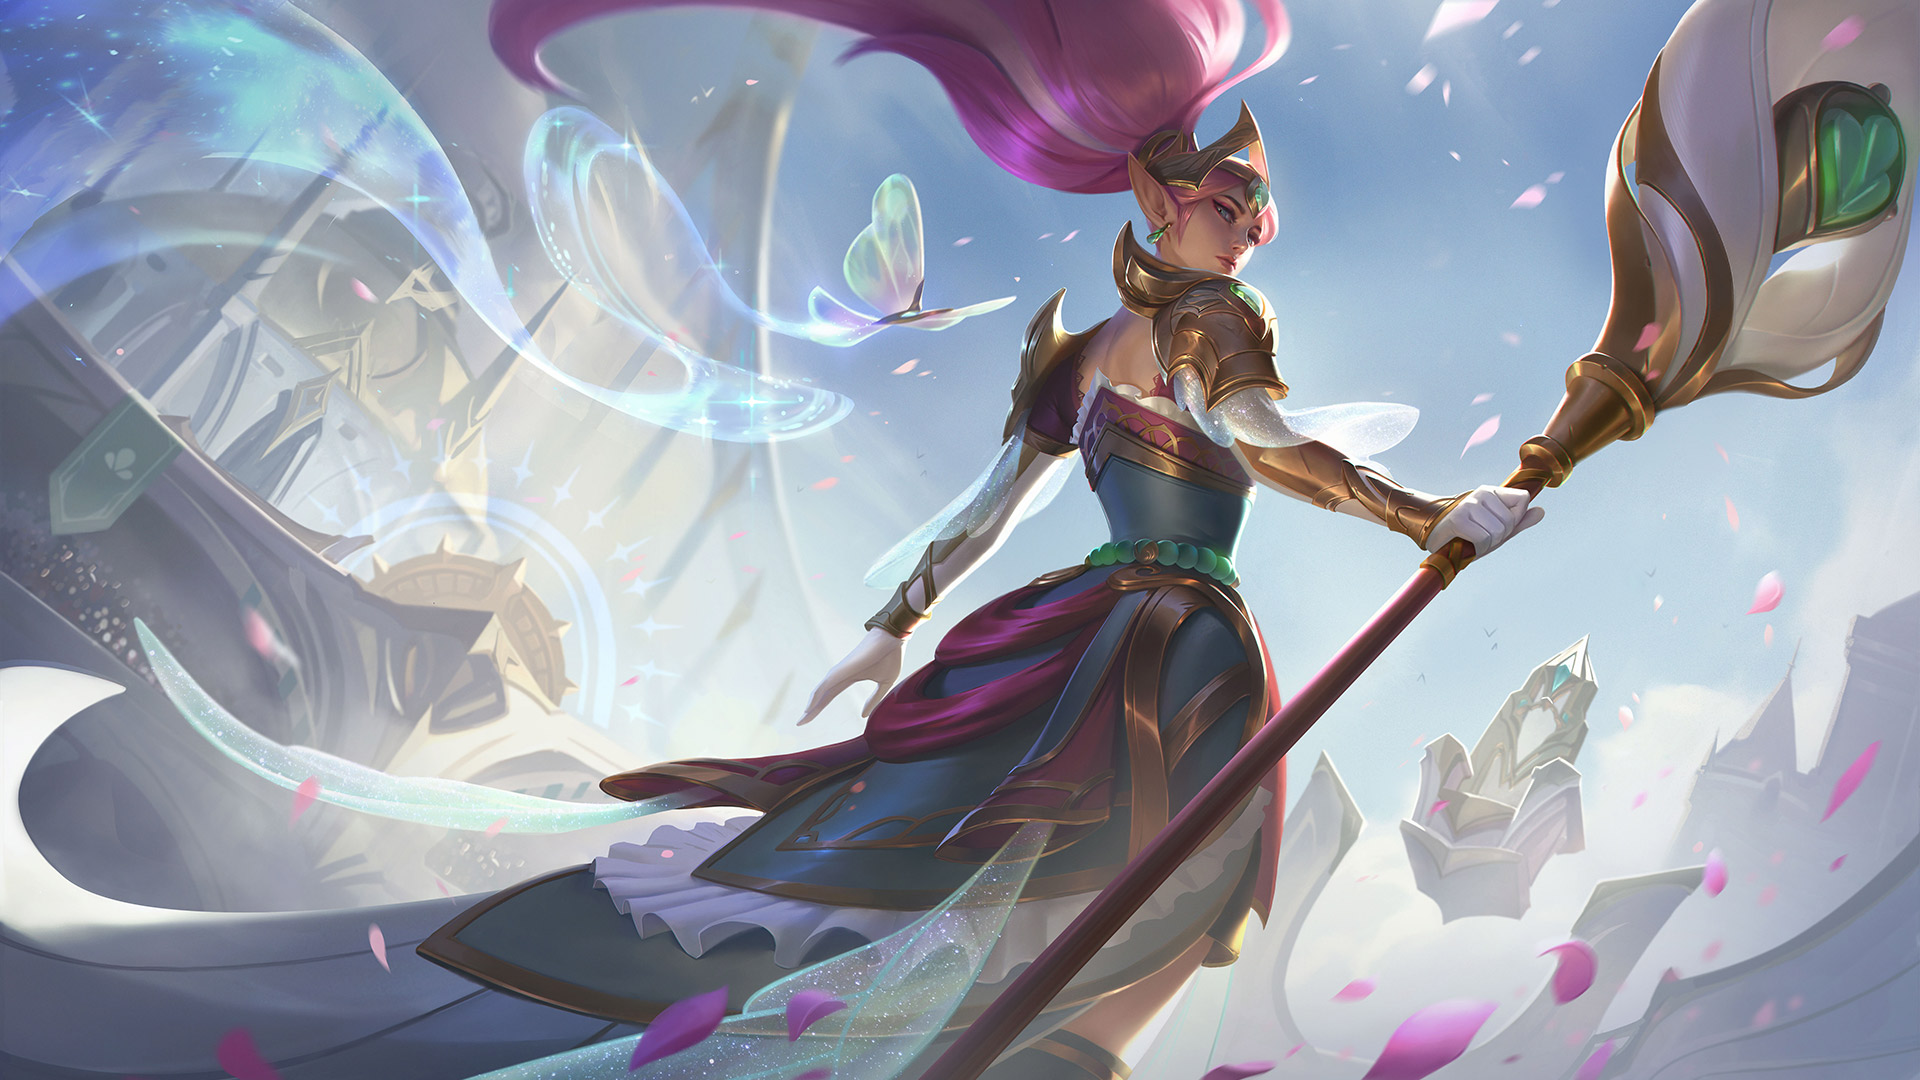 Battle_Queen_Janna_Splash.jpg